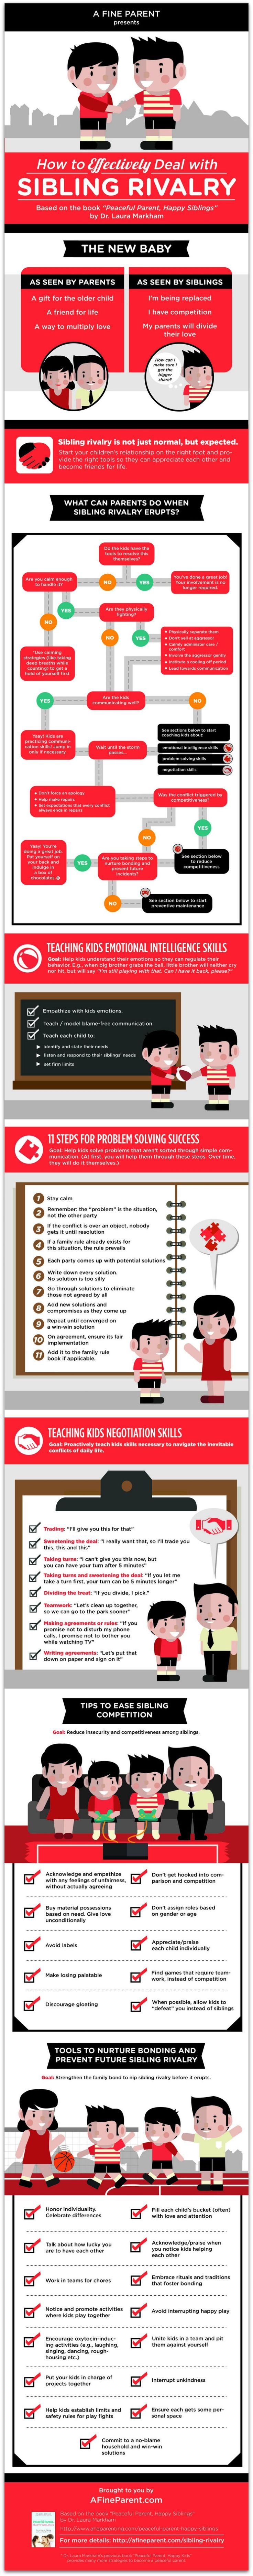 How to Deal With Sibling Rivalry Effectively Infographic